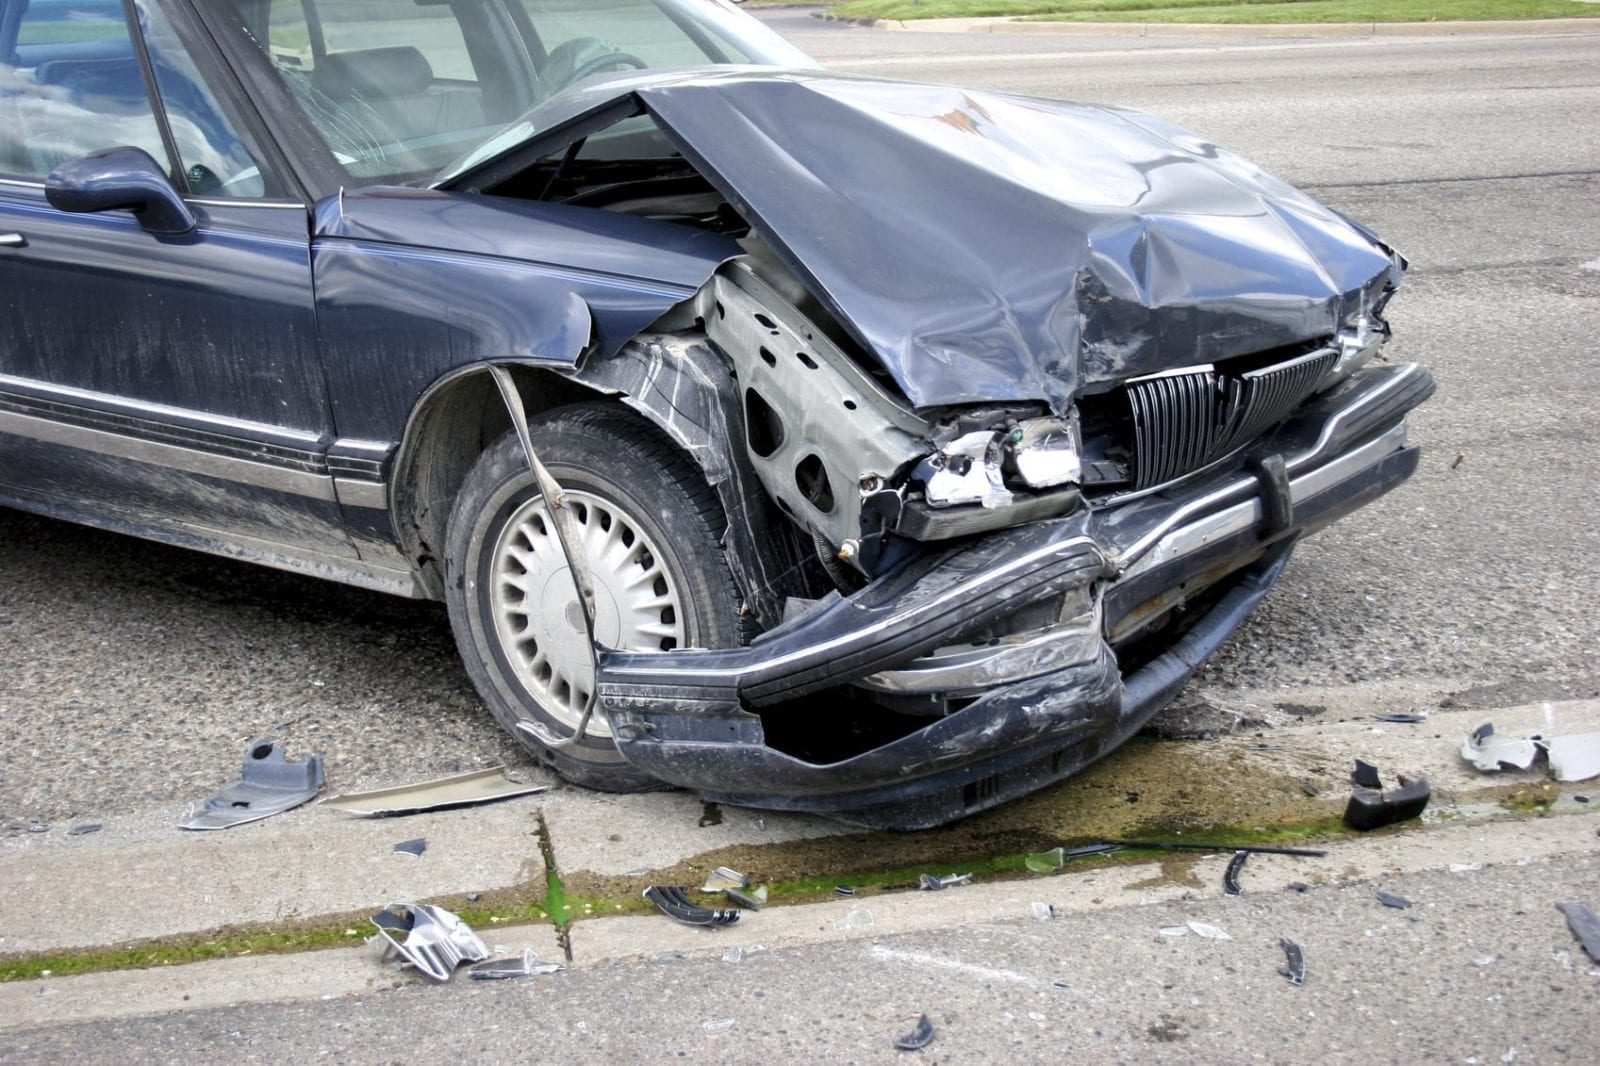 Navy Blue Sedan With Severe Front End Damage Stock Photo